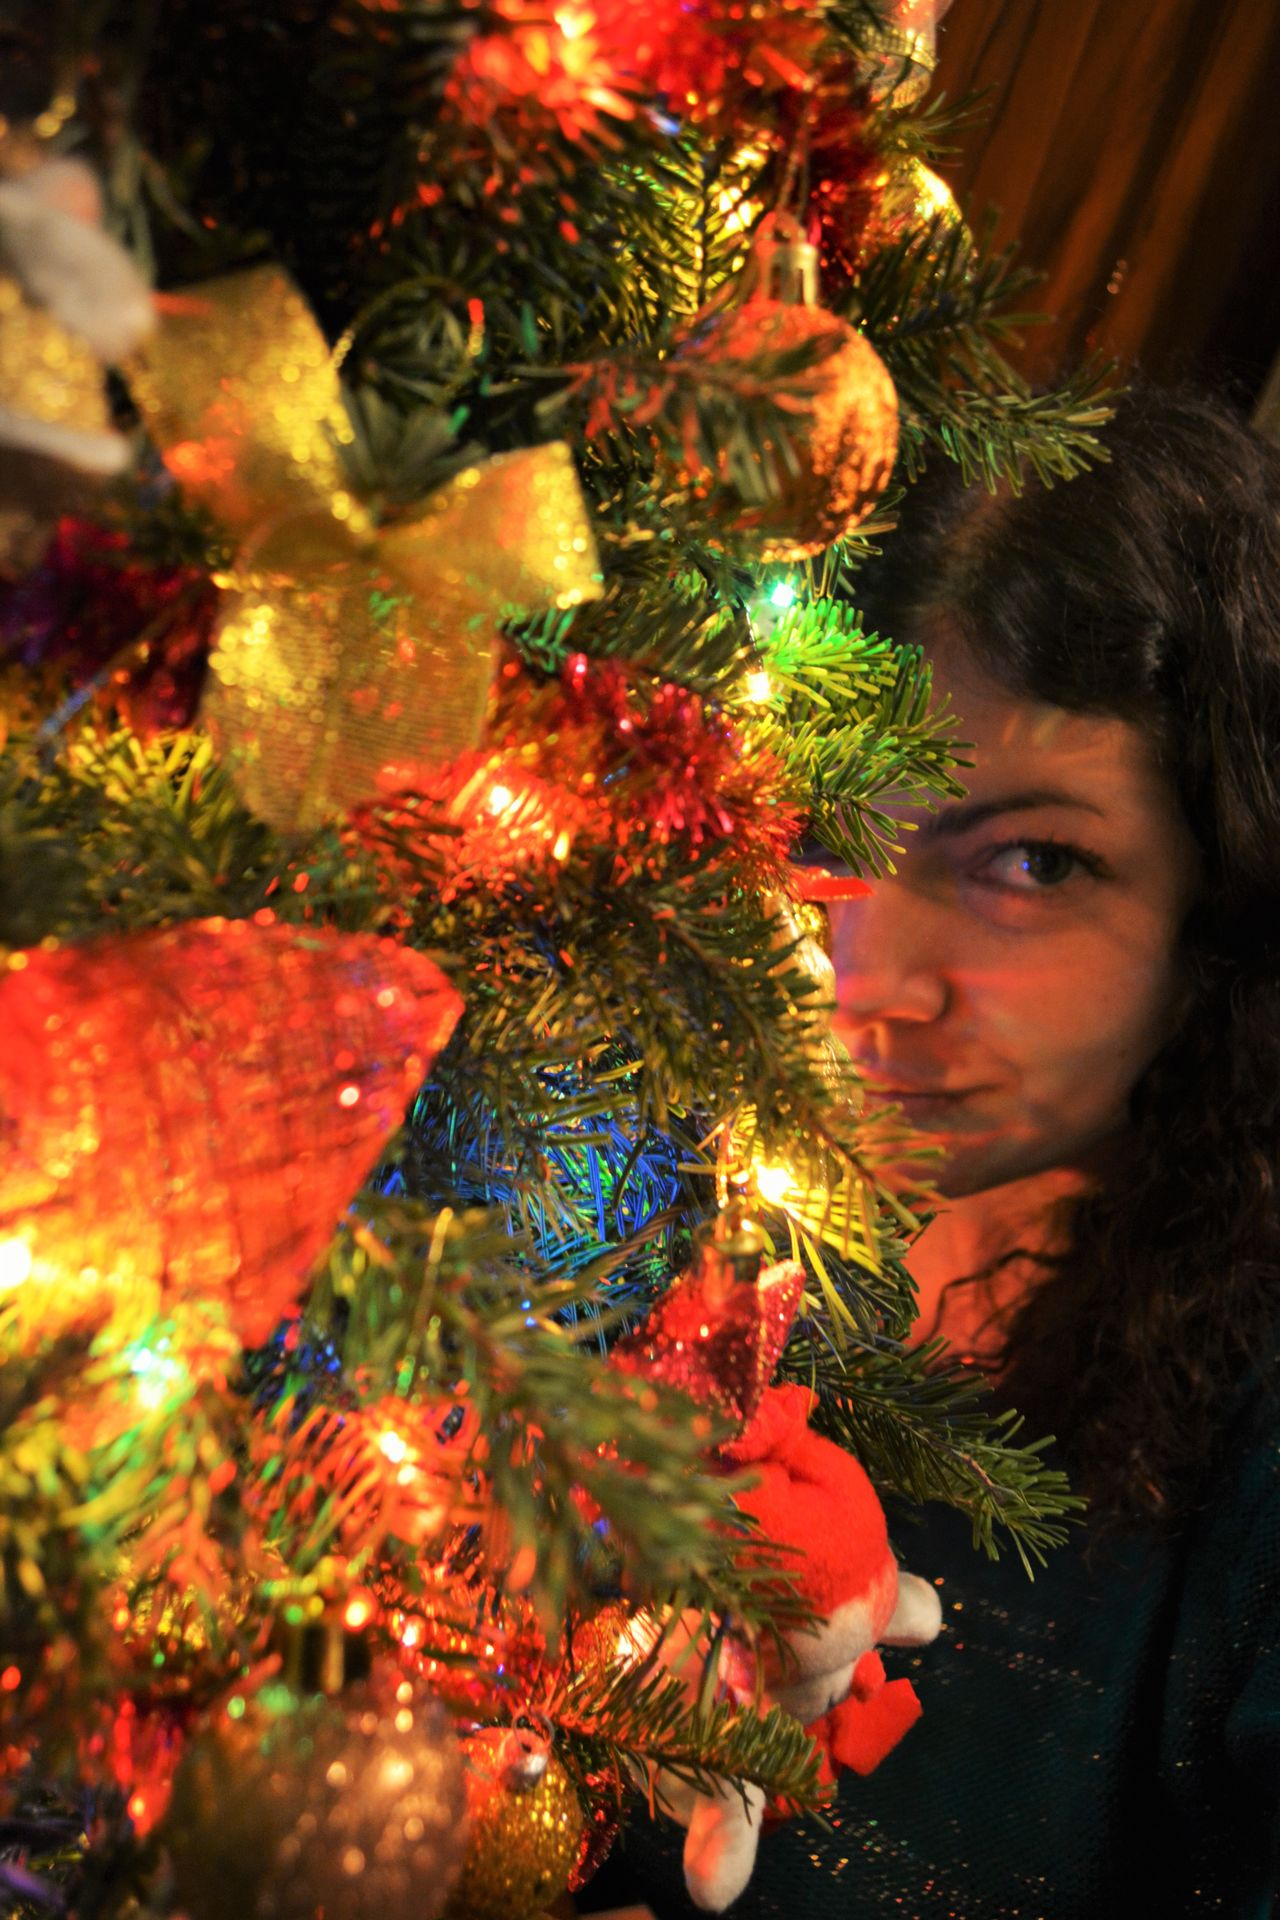 Celebration Childhood Christmas Christmas Decoration Christmas Ornament Christmas Tree Close-up Happiness Holiday - Event Illuminated Indoors  Lifestyles Looking At Camera Night One Person People Portrait Real People Smiling Tradition Tree Young Adult